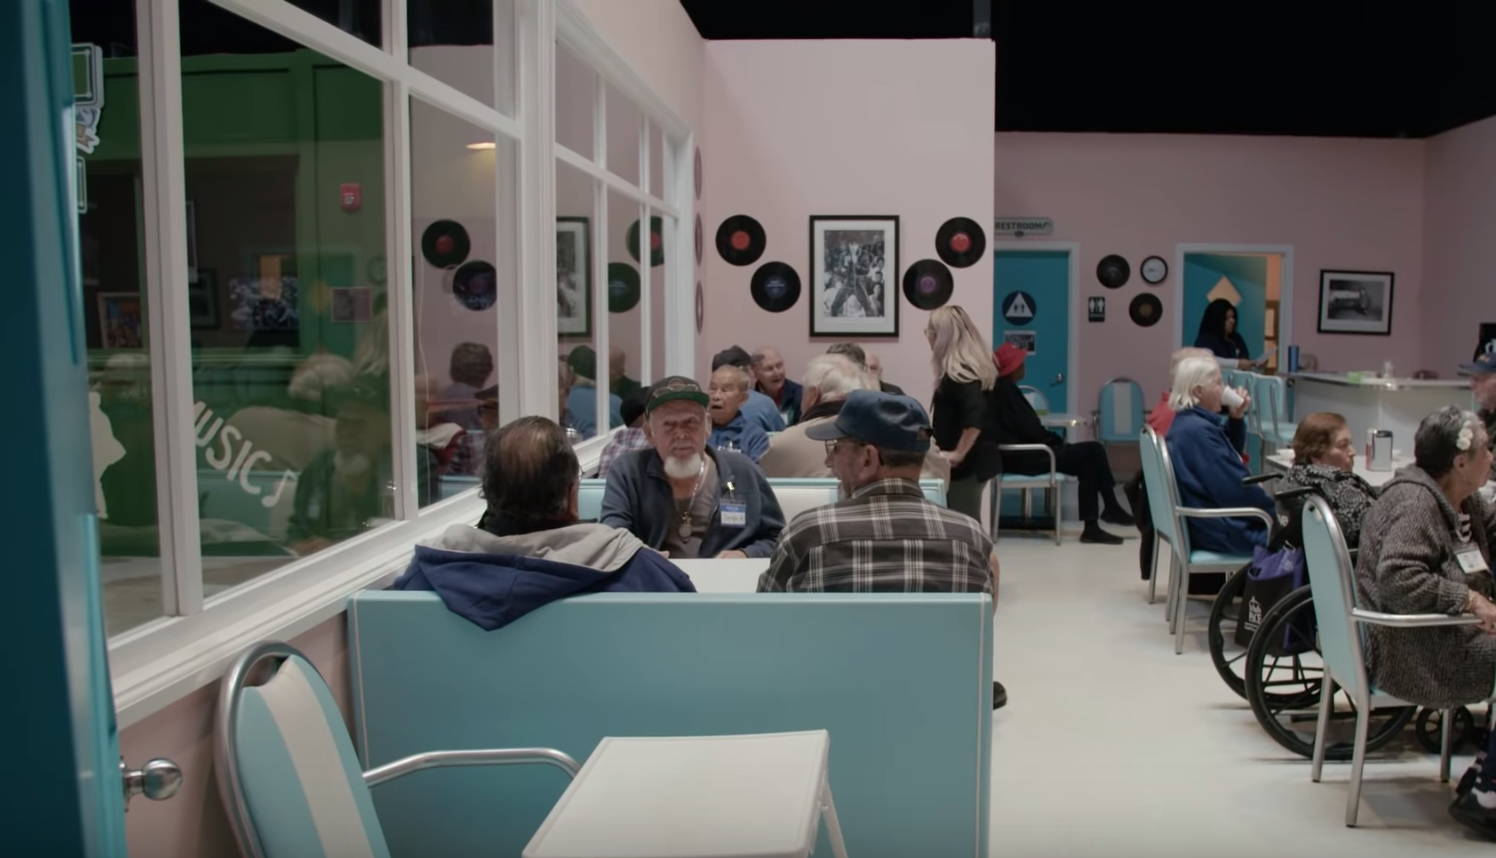 Vice Visits The Fake 1950s Town Created For People With Alzheimer's